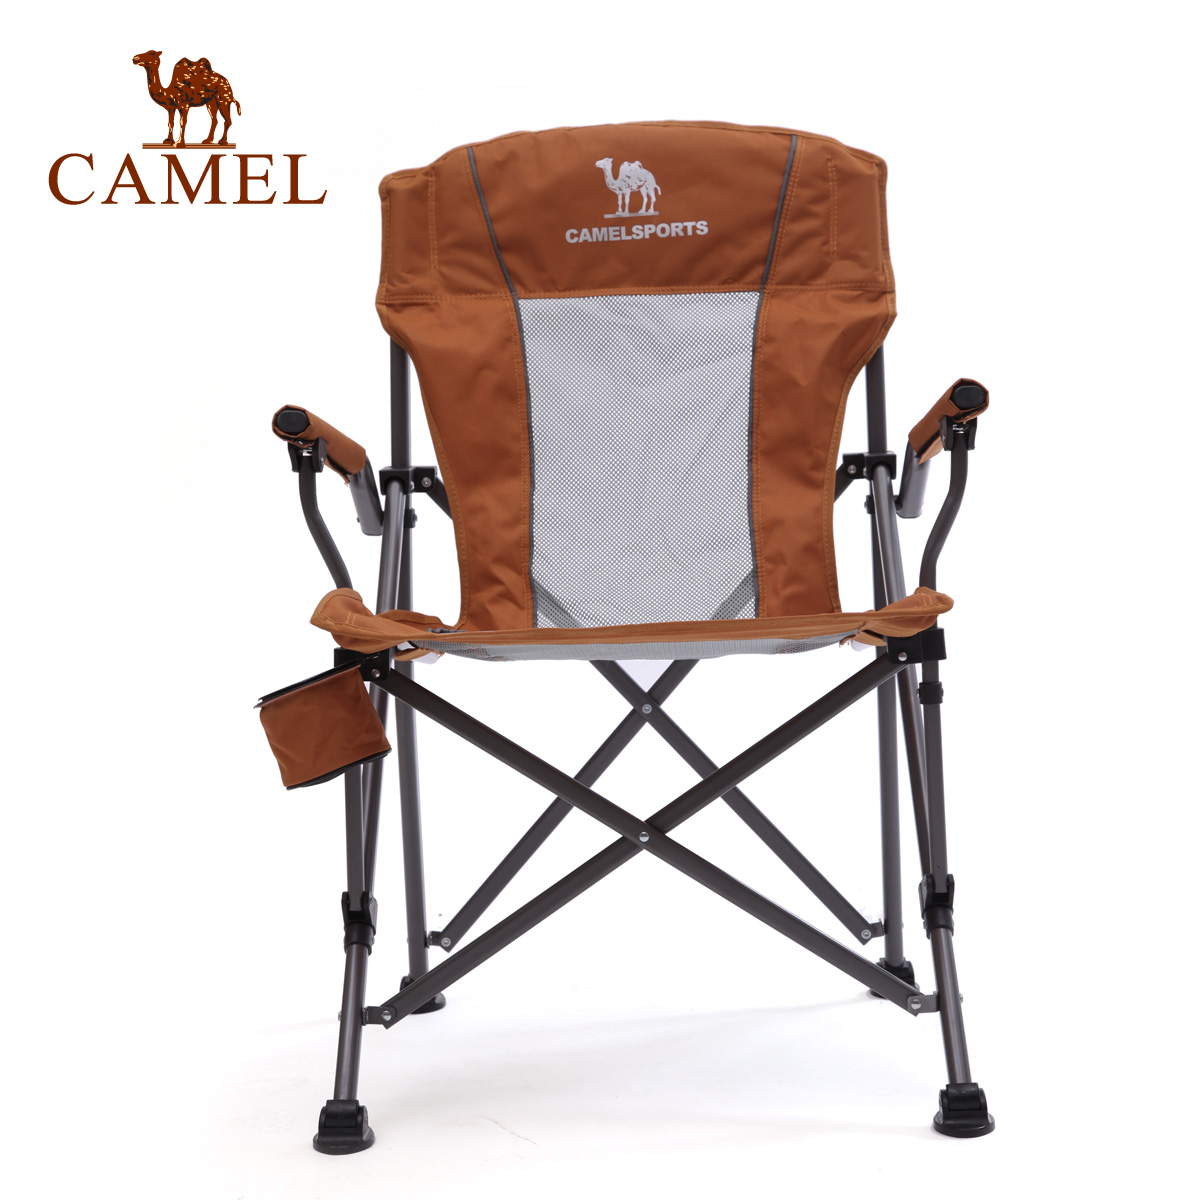 Camel camel outdoor folding chair armchair outdoor folding chair portable chair fishing chair